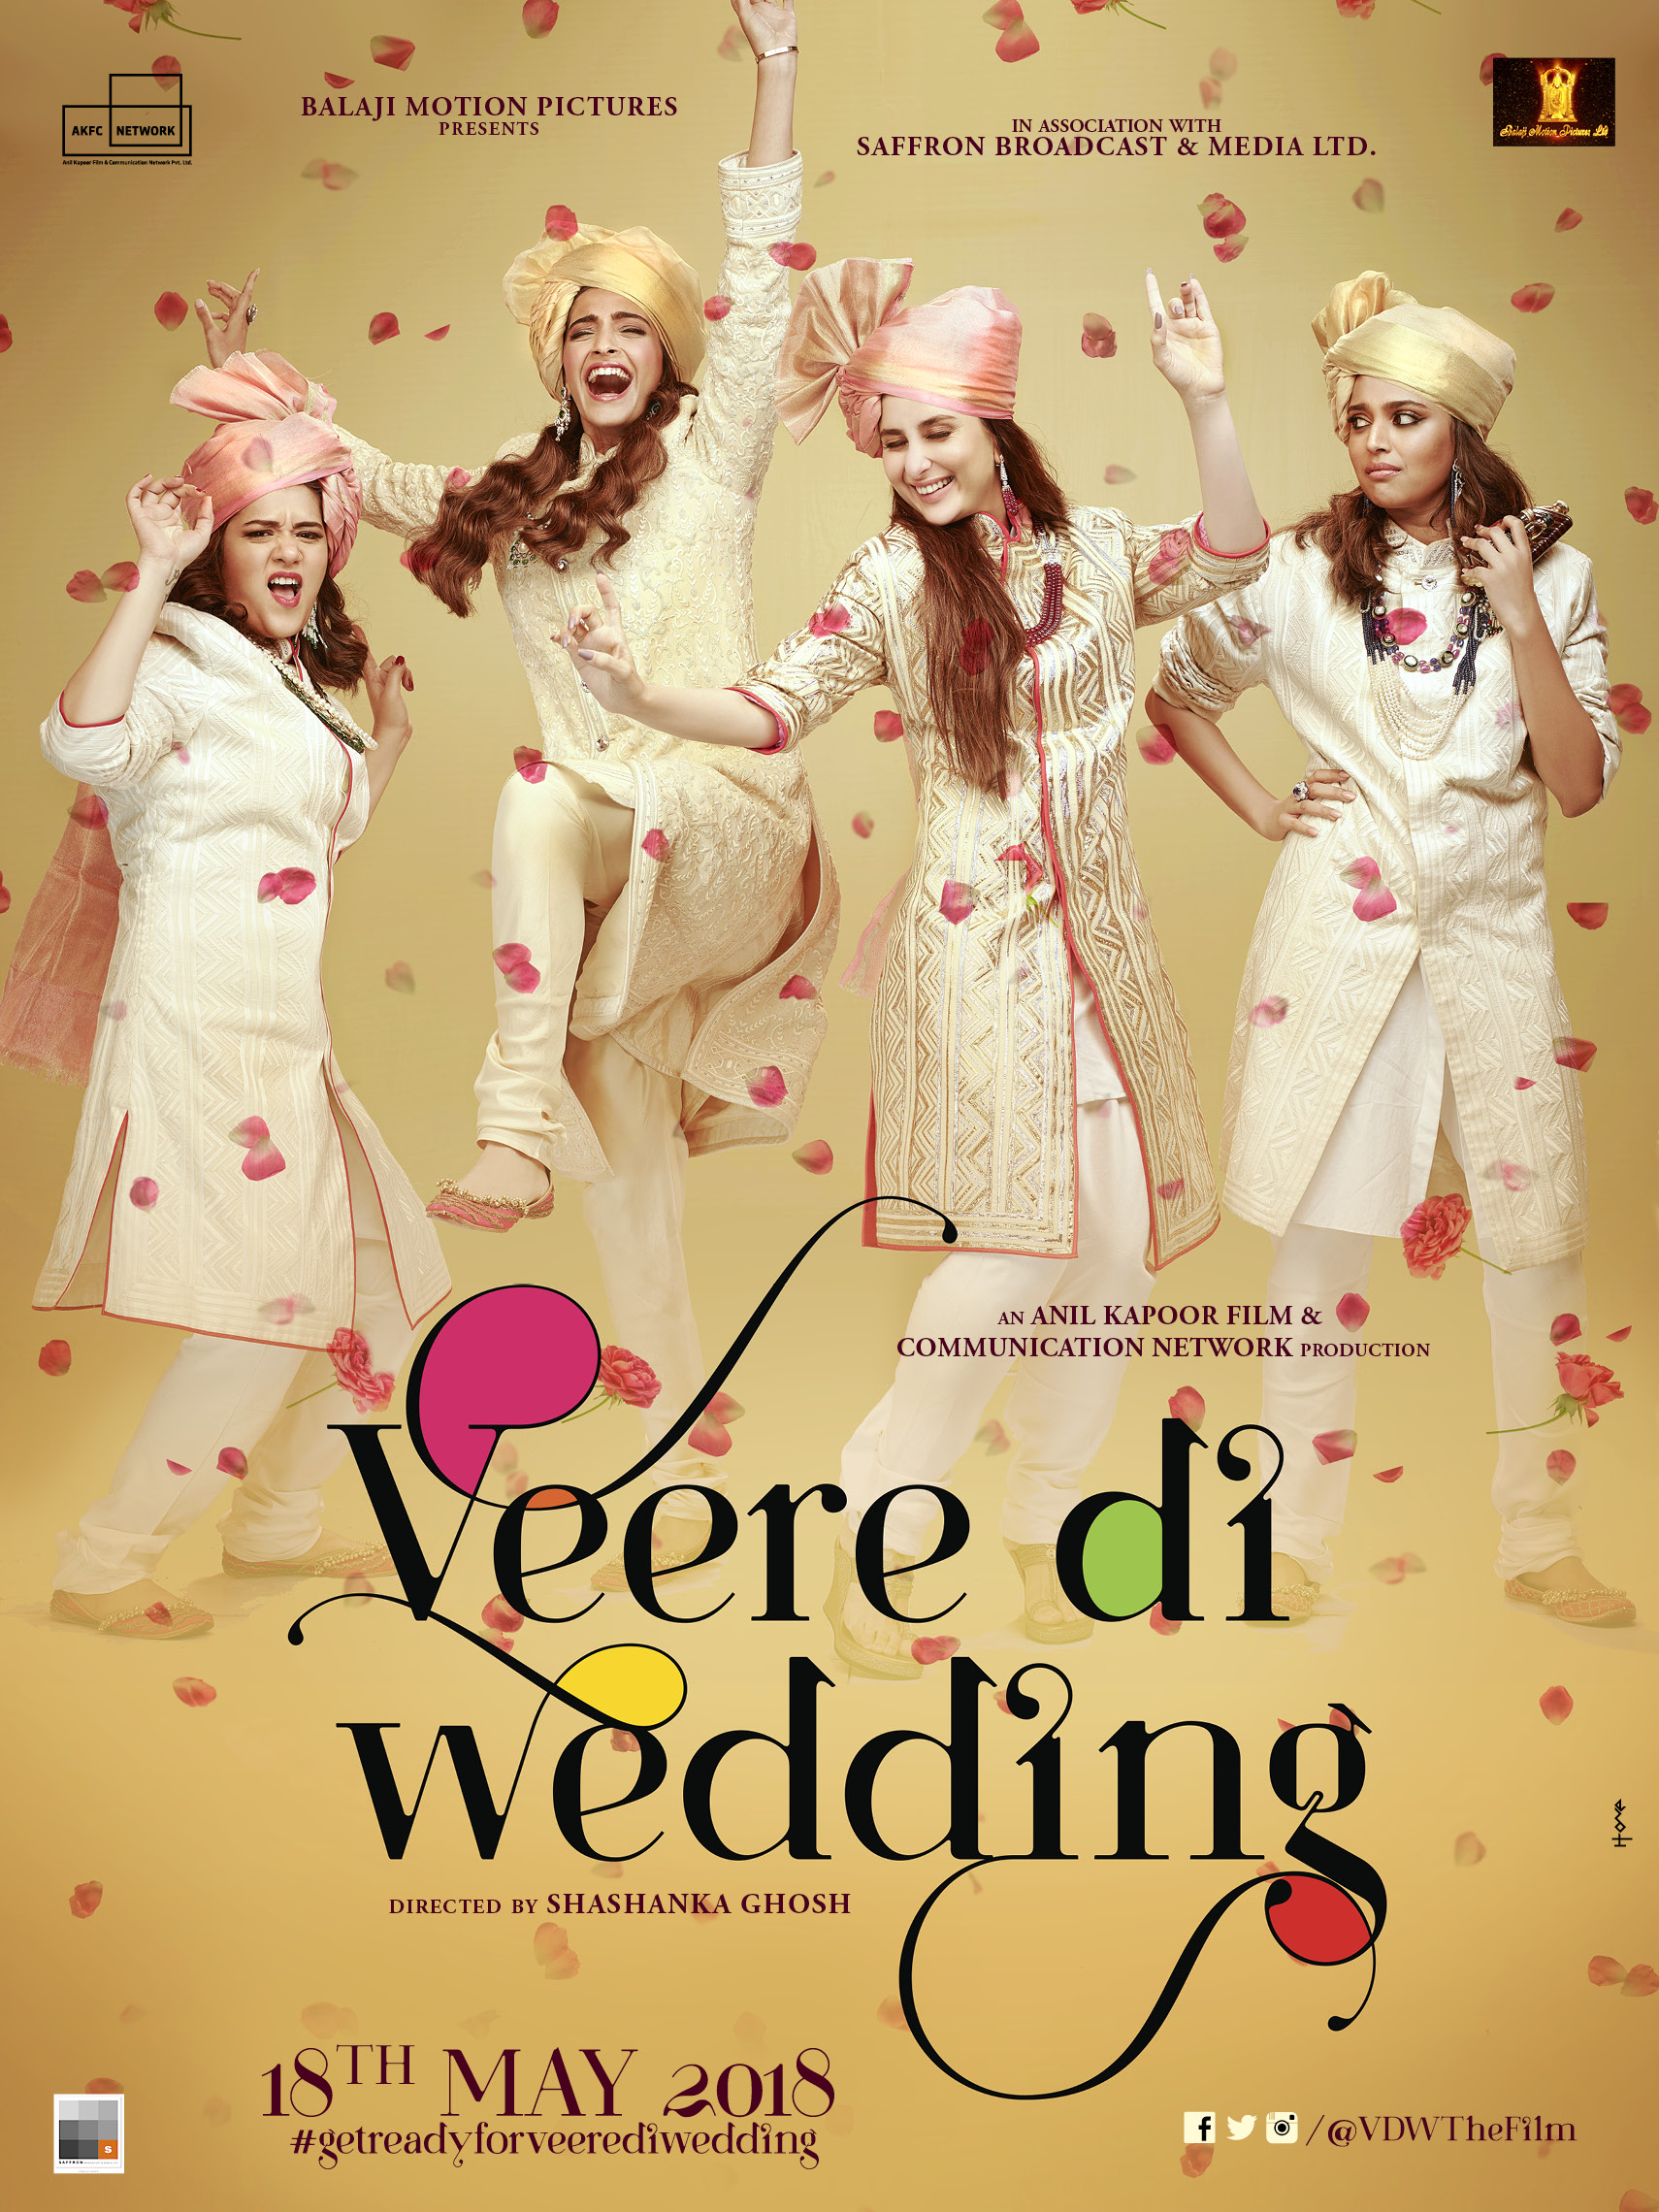 Save the date for Bollywood's most awaited wedding